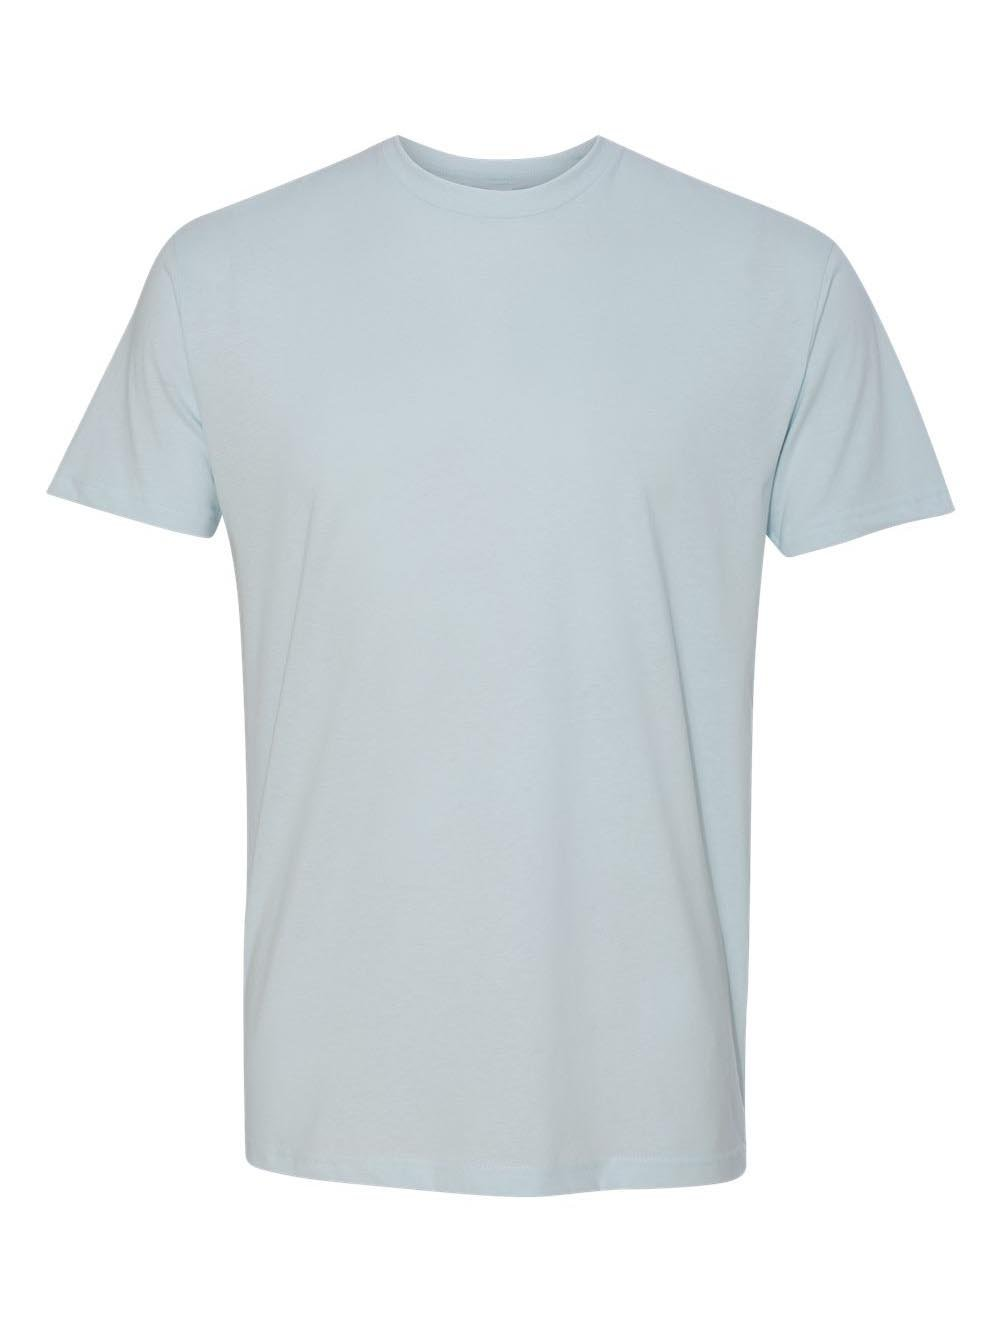 Next Level Men's Premium Fitted Sueded Crew, Light Blue, XX-Large